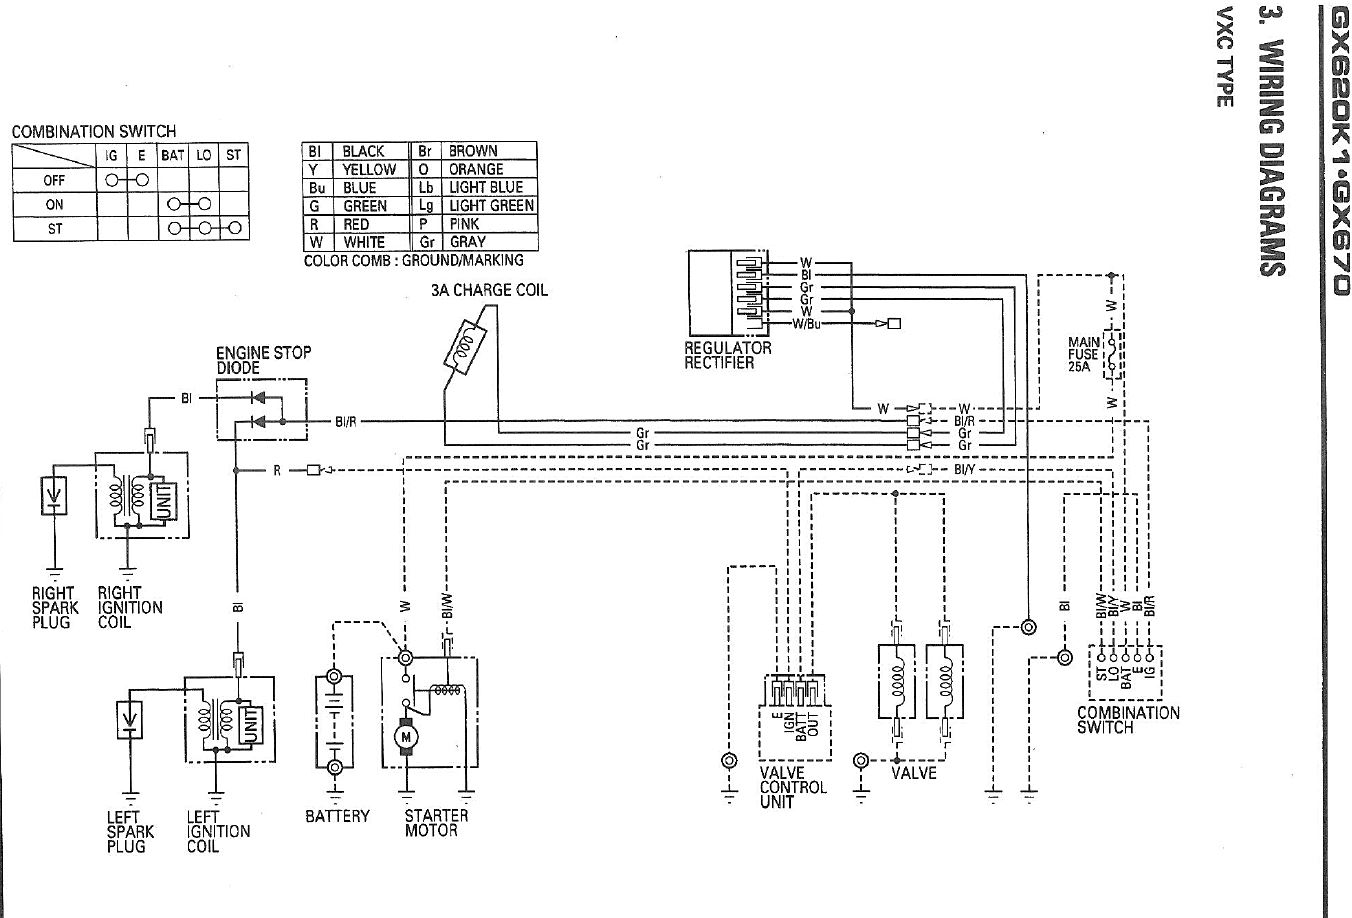 Wiring Harness For Onan Generator : Onan generator wiring diagram free engine